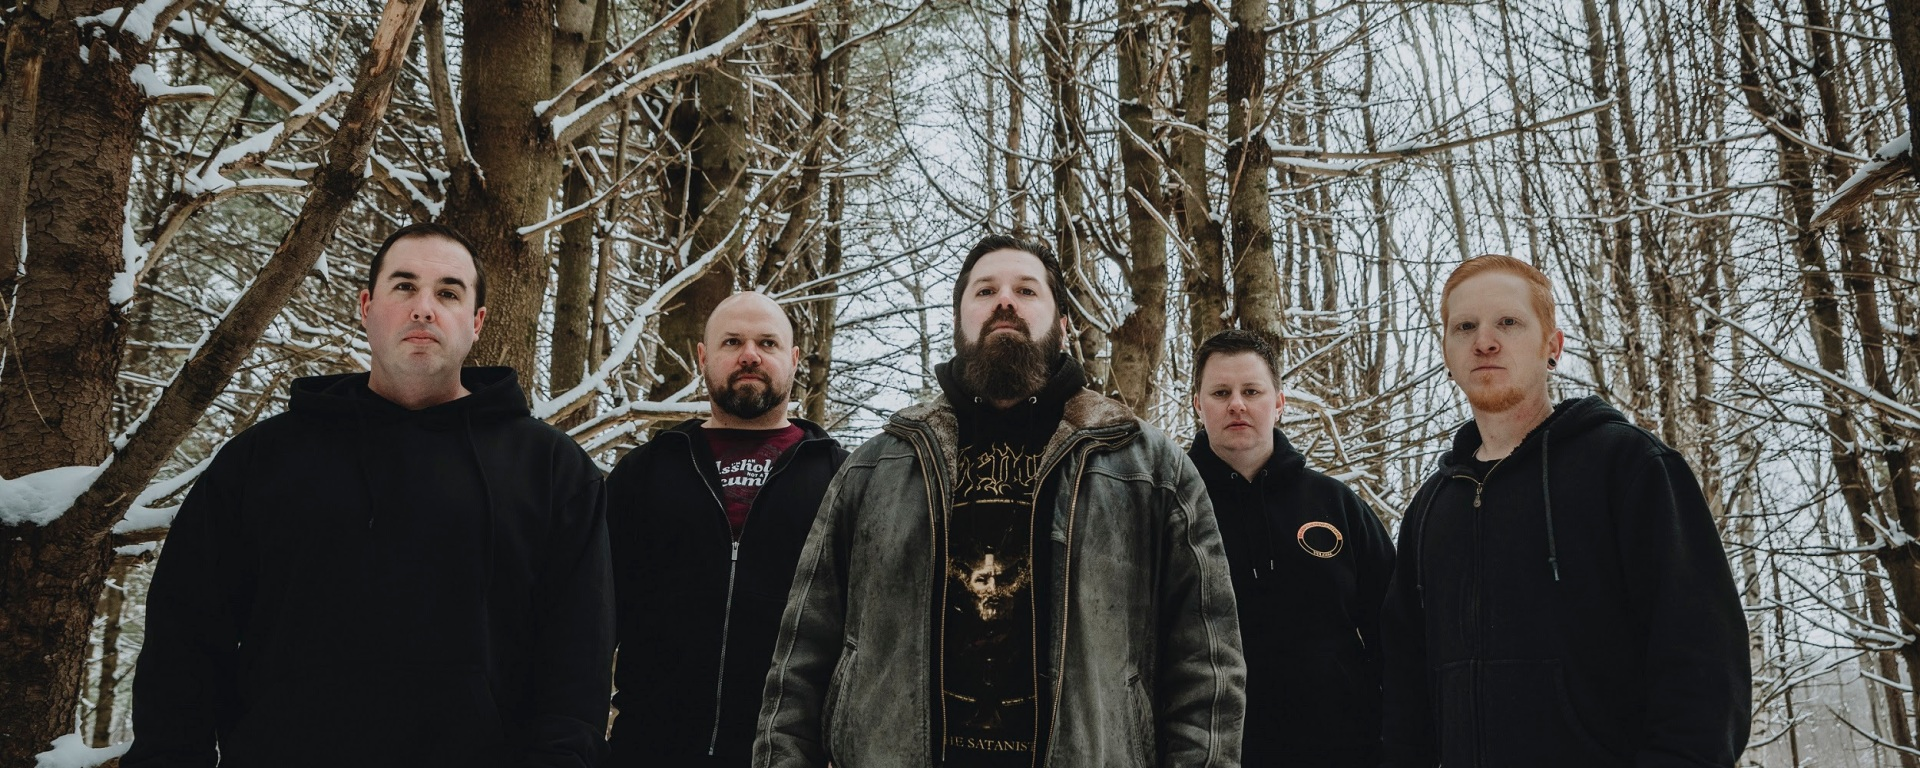 """AS WE SUFFER's New Single """"Concrete Fist"""" Is A Knuckle Fury of Hardcore Groove; New Album April 30th"""